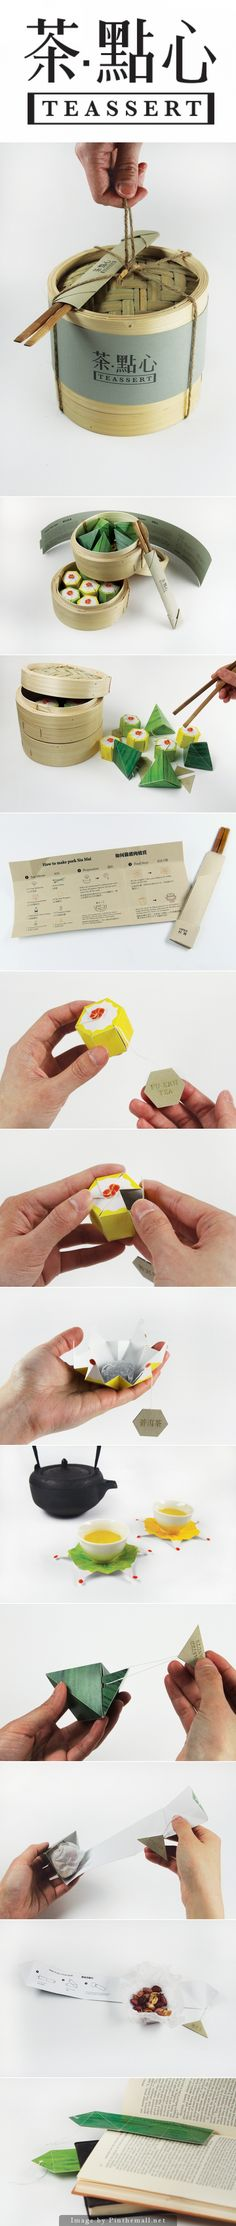 To Box For Leftovers From Your Dinner Party Guests! Too pretty not to share the entire Teassert by Lily Kao packaging pin curated by Packaging Diva PD Japanese Packaging, Food Packaging Design, Tea Packaging, Pretty Packaging, Brand Packaging, Branding Design, Identity Branding, Corporate Design, Brochure Design